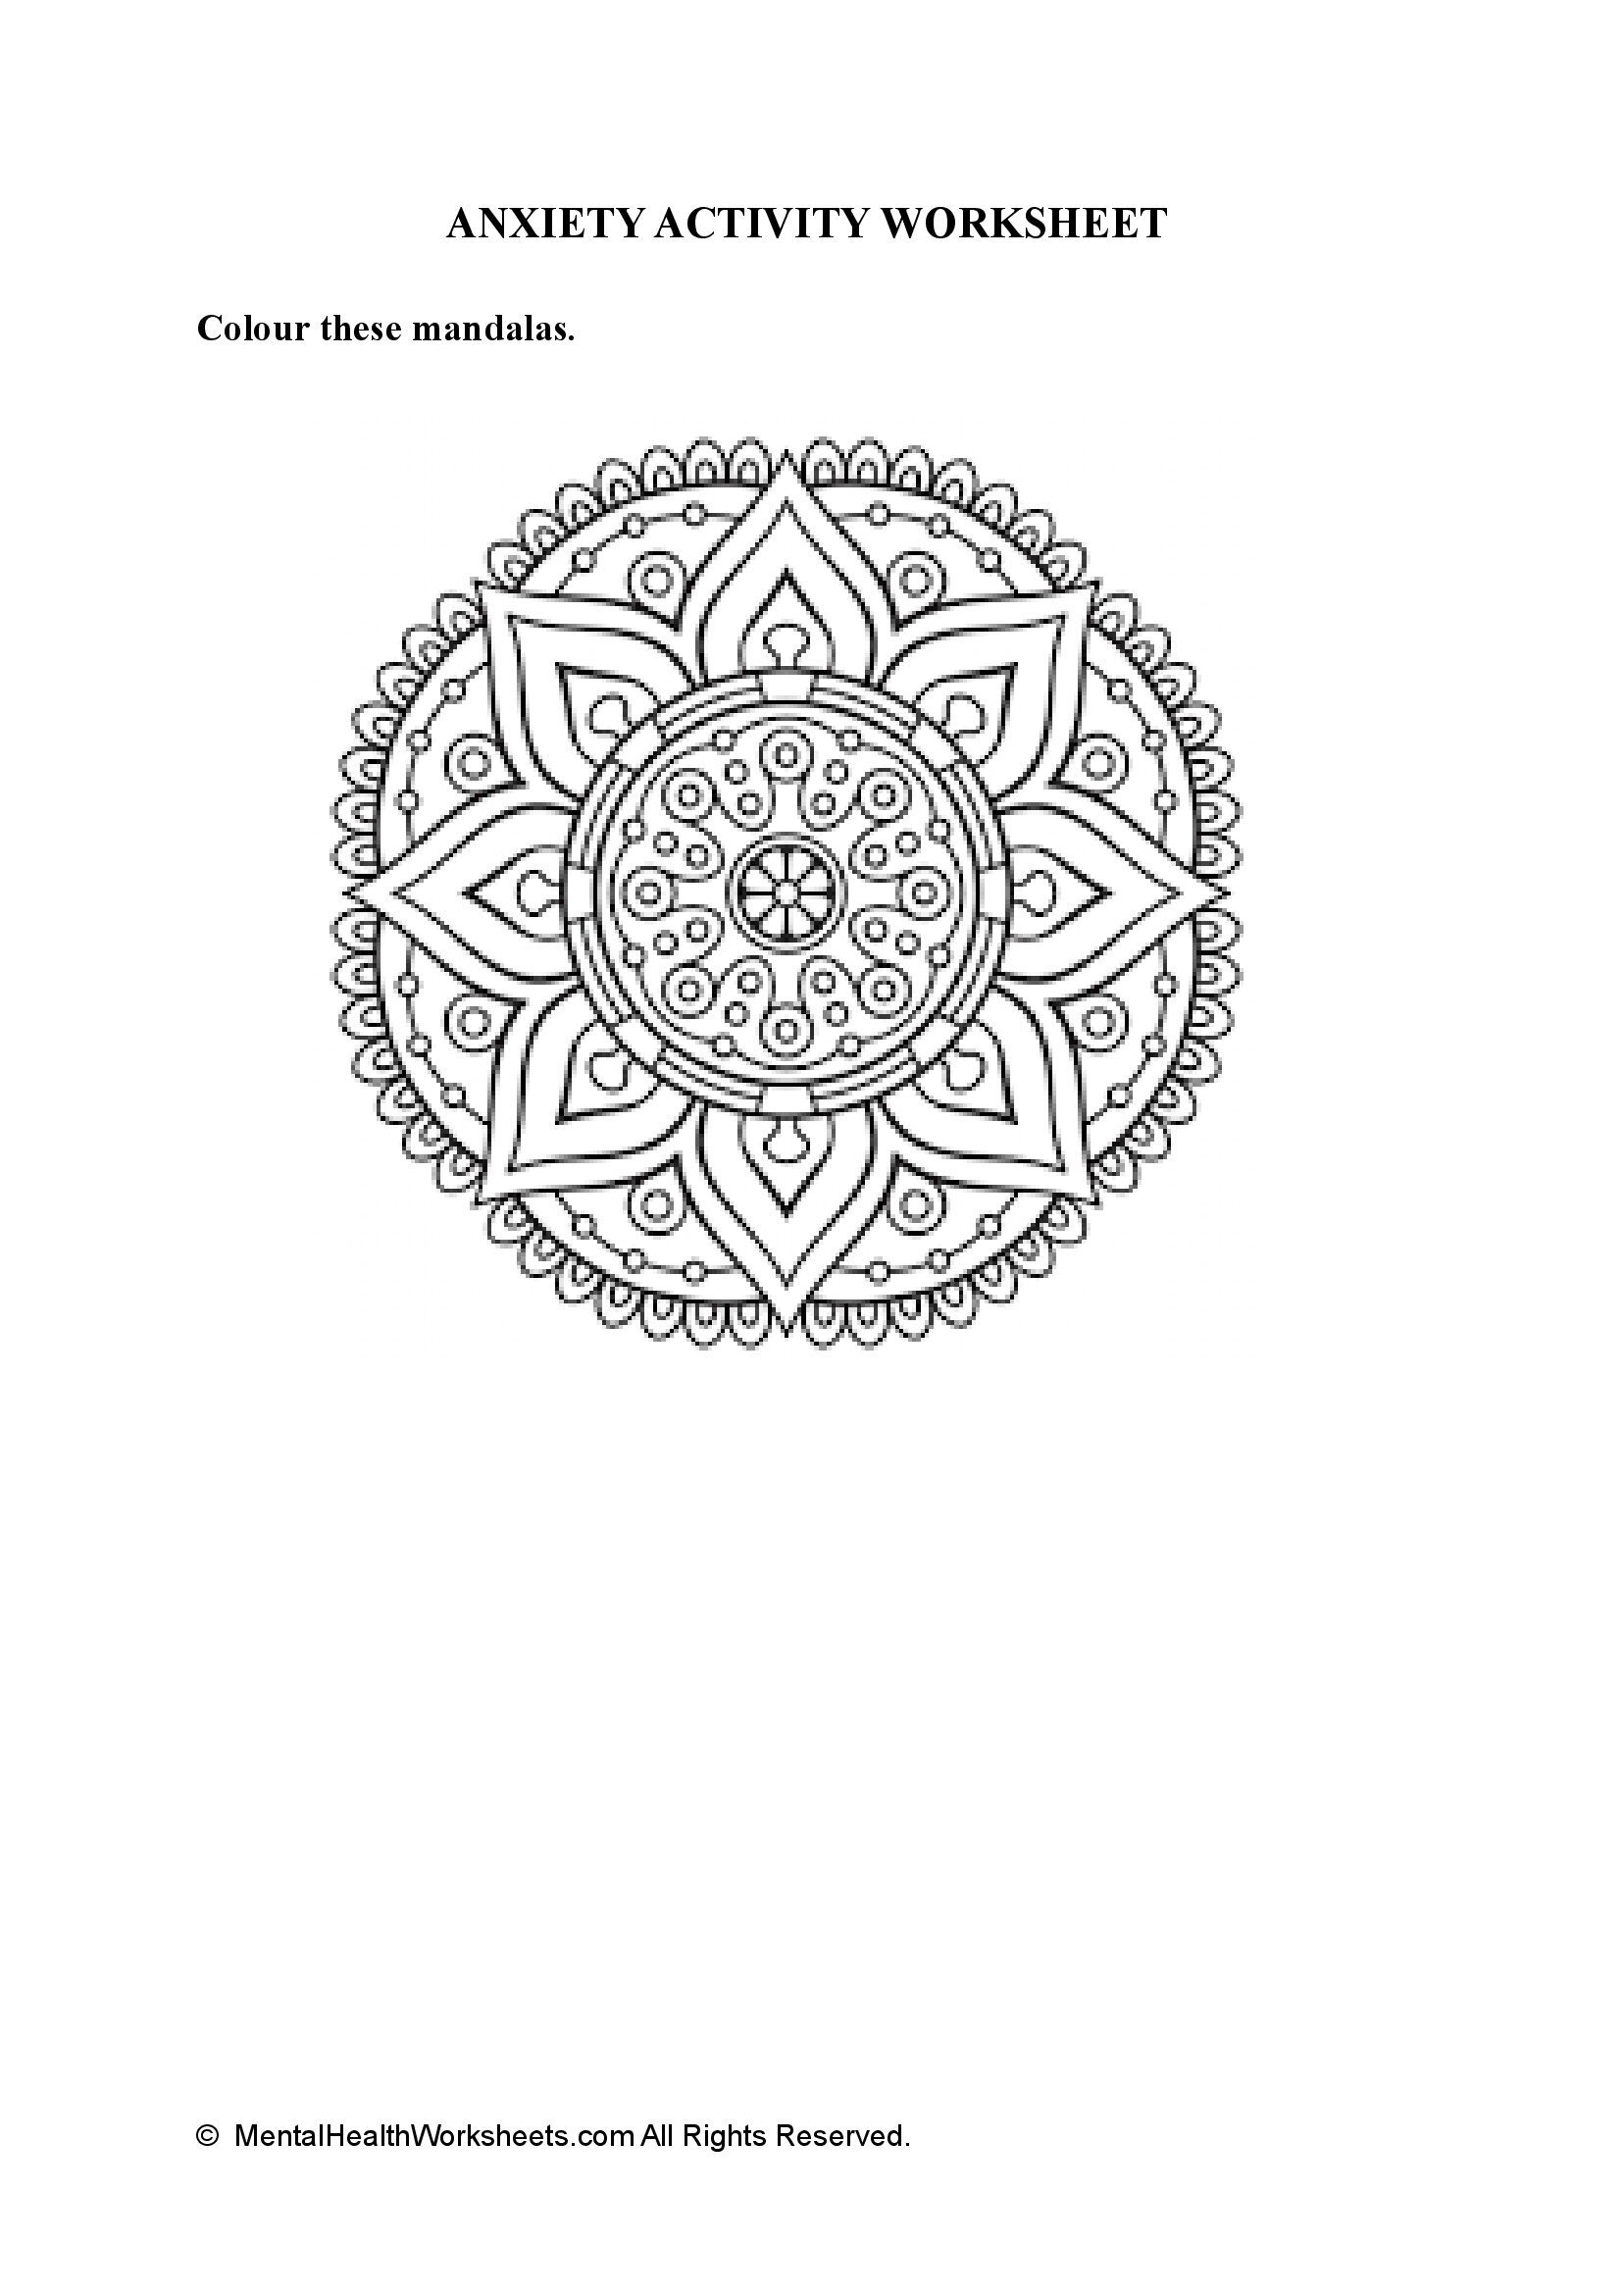 ANXIETY ACTIVITY WORKSHEET